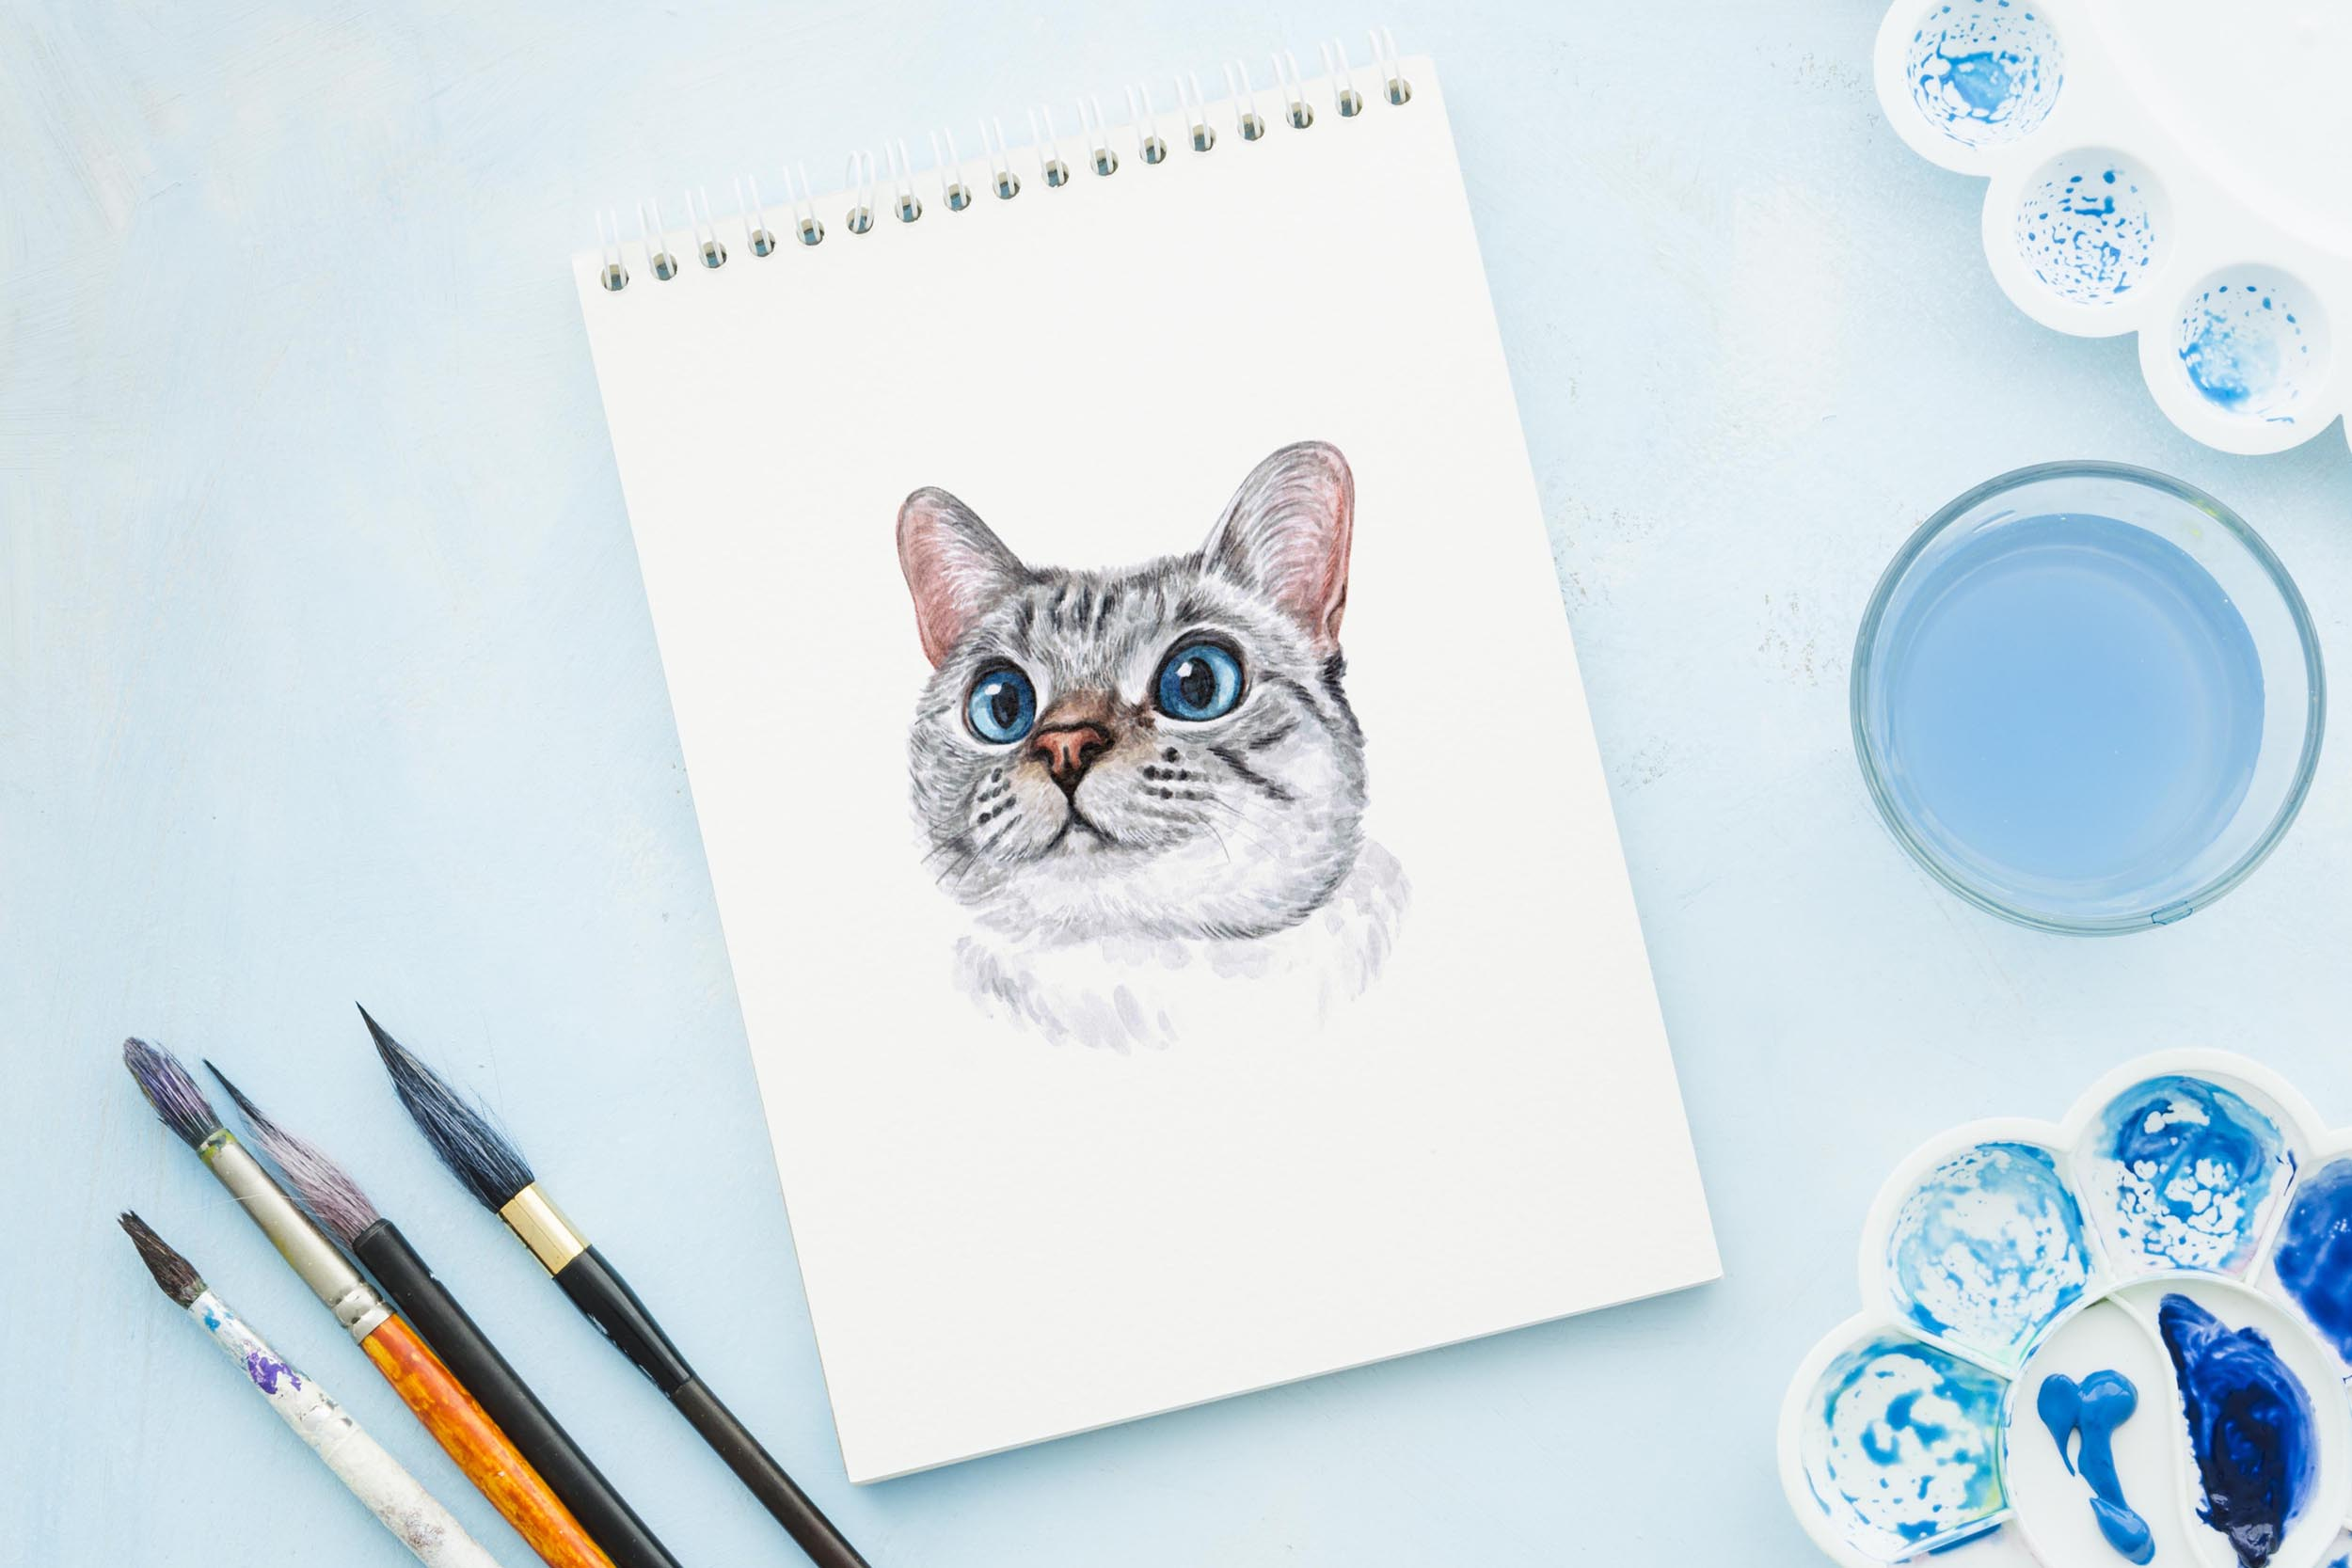 Watercolor 18 cat breeds illustrations. Cute cat. Meow. example image 12